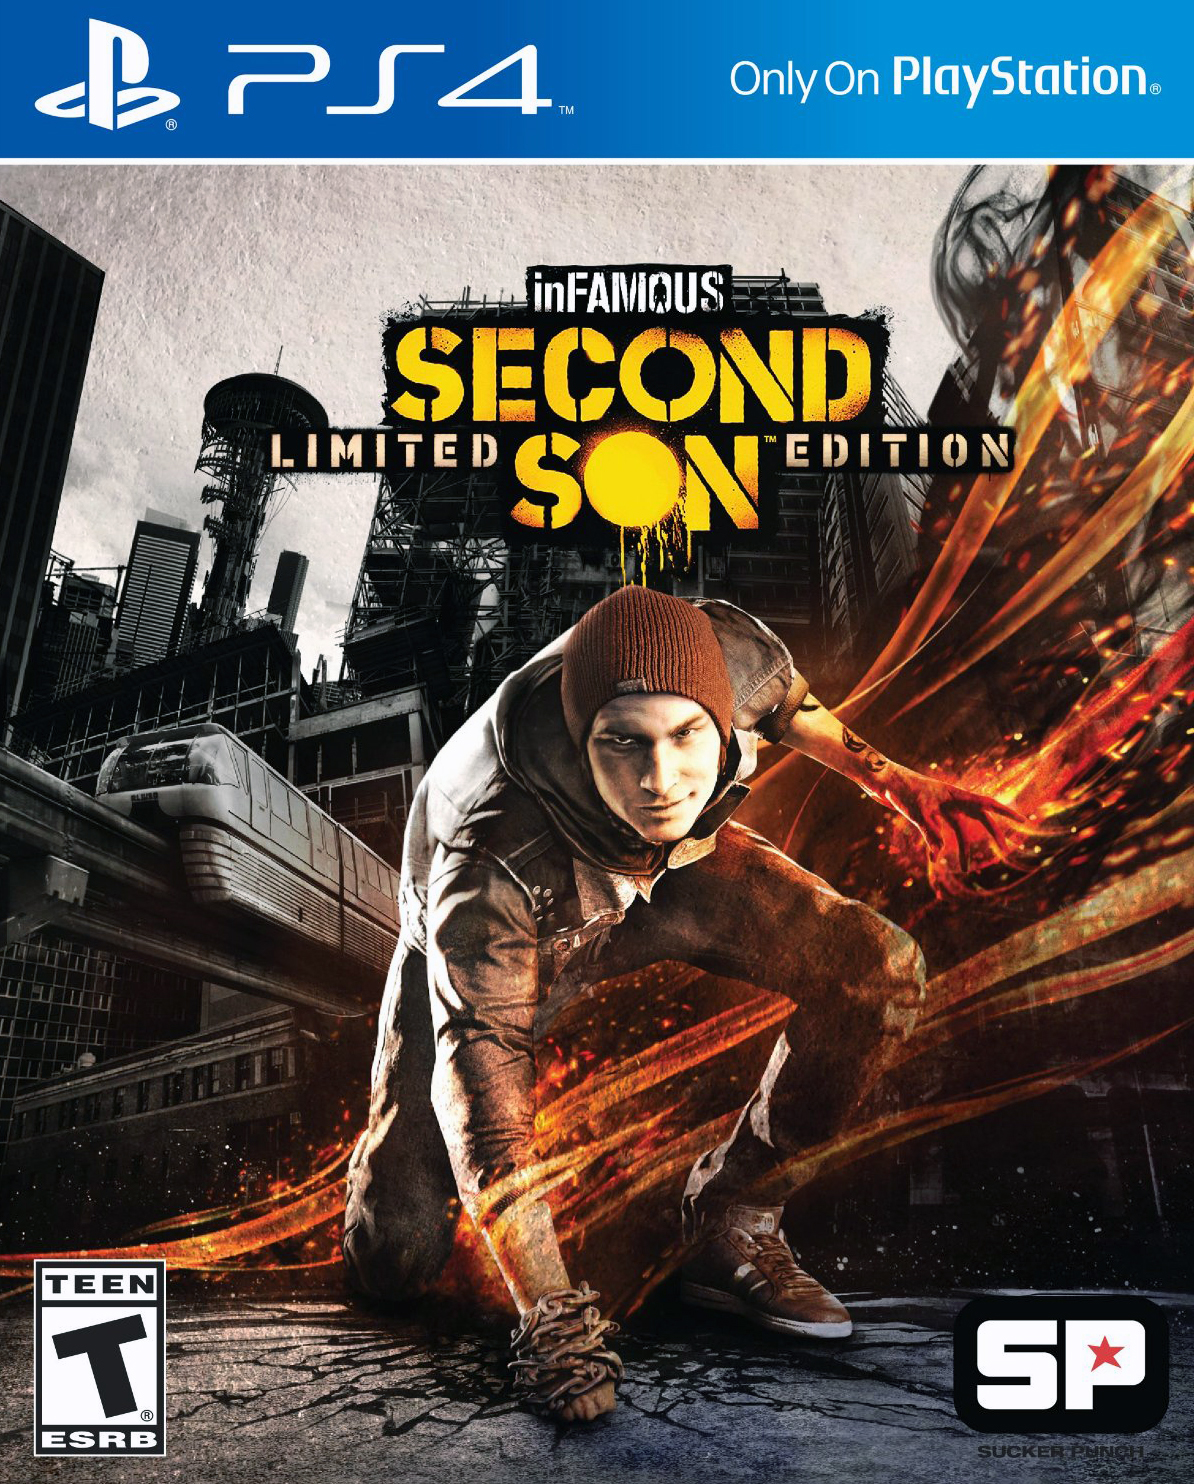 inFAMOUS Second Son for PlayStation 4 (R1)